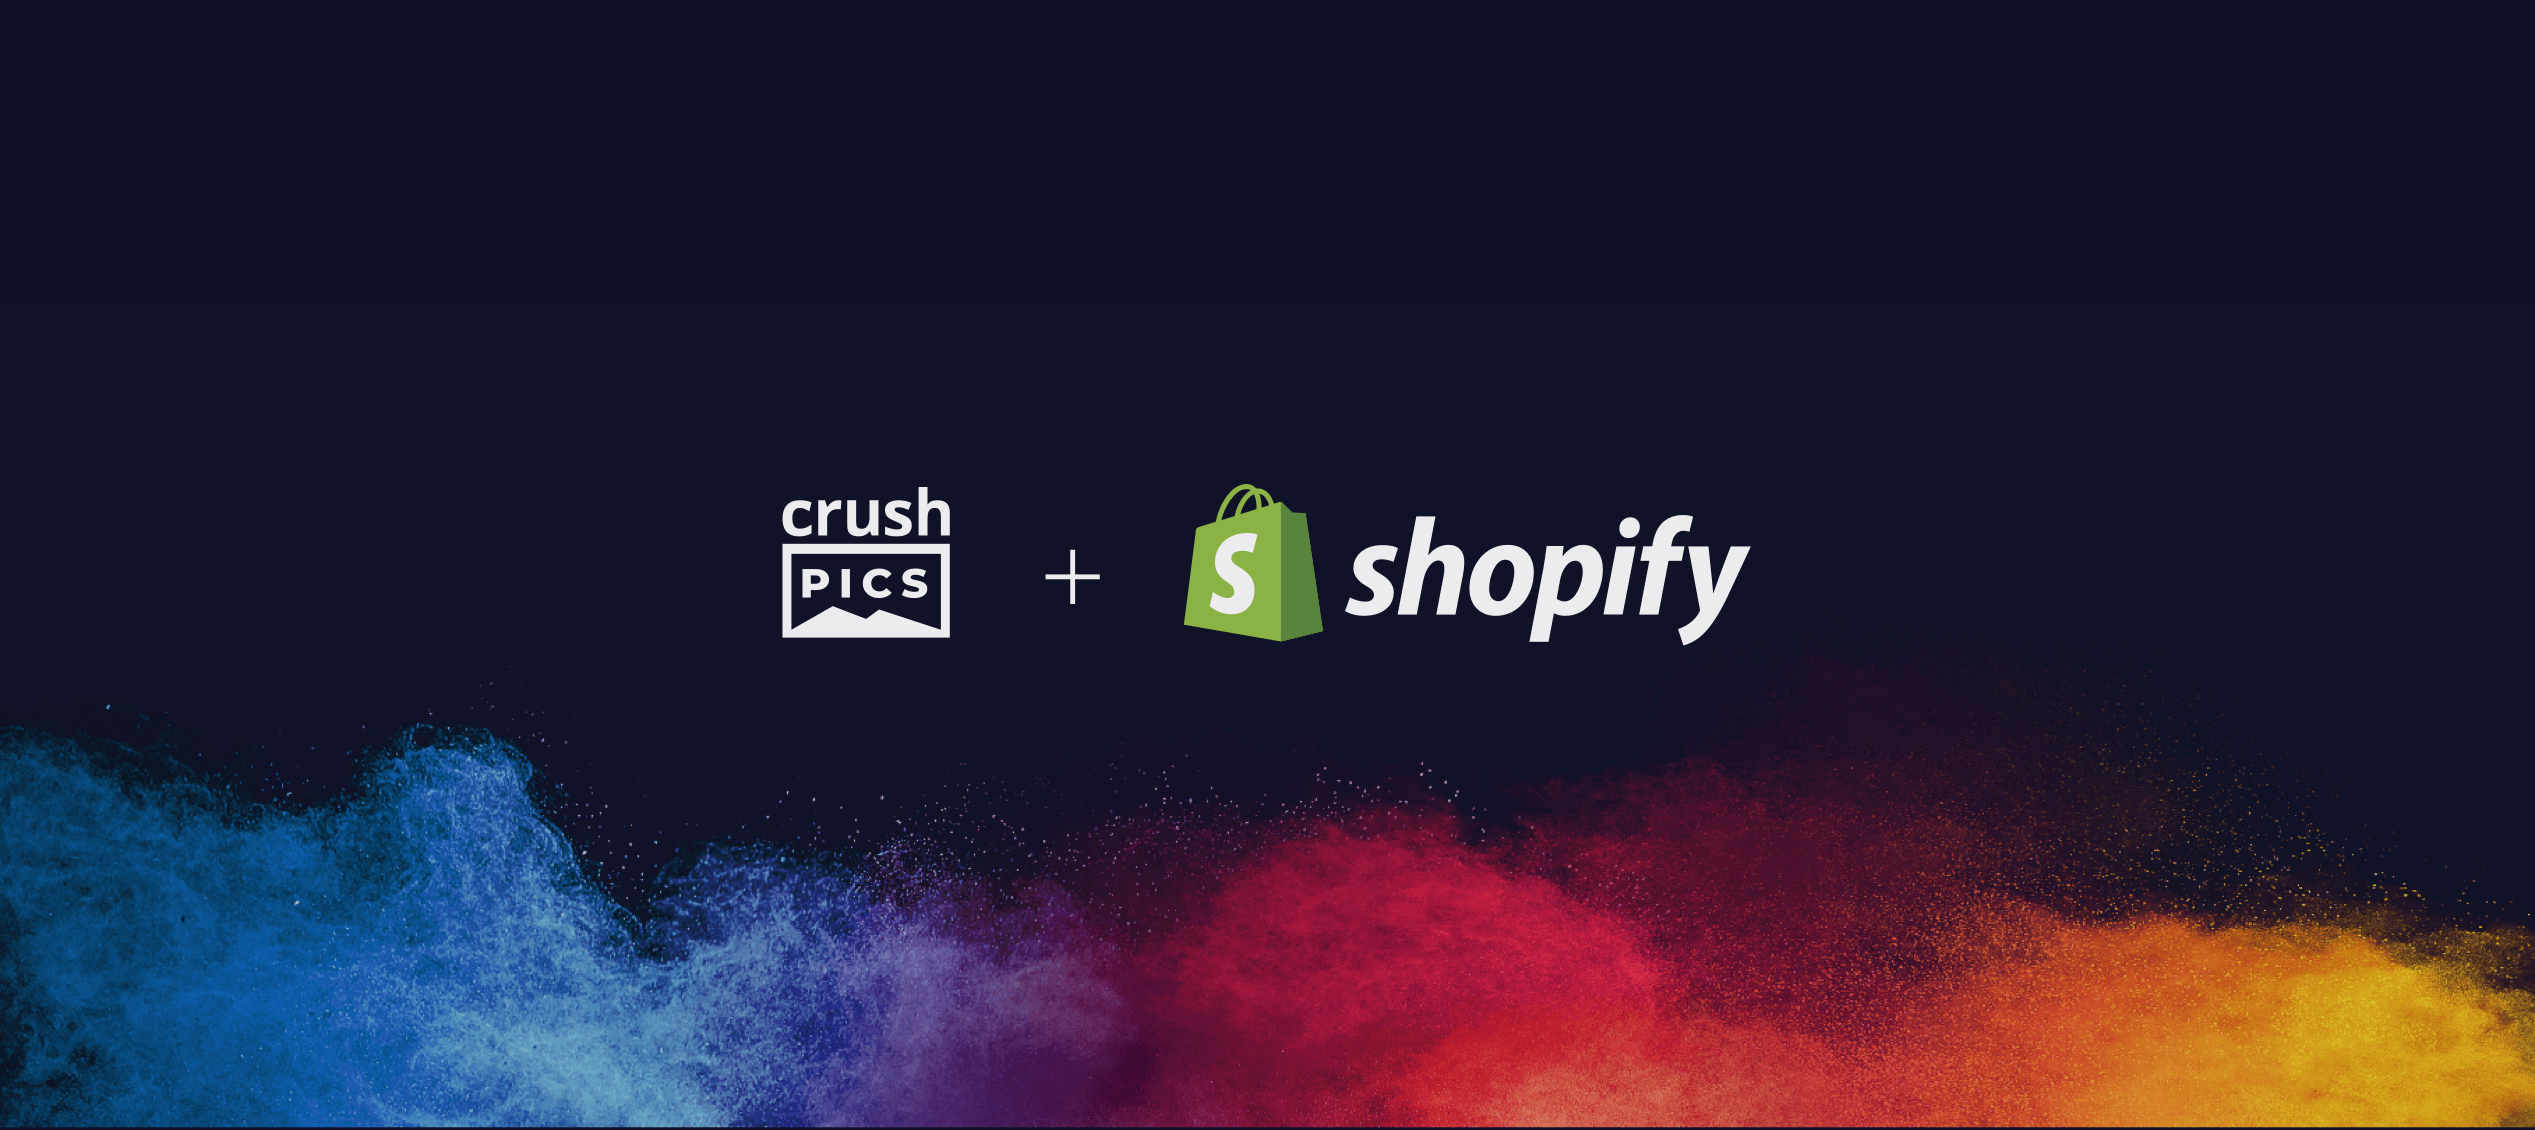 Shopify Image Compression is Not Enough